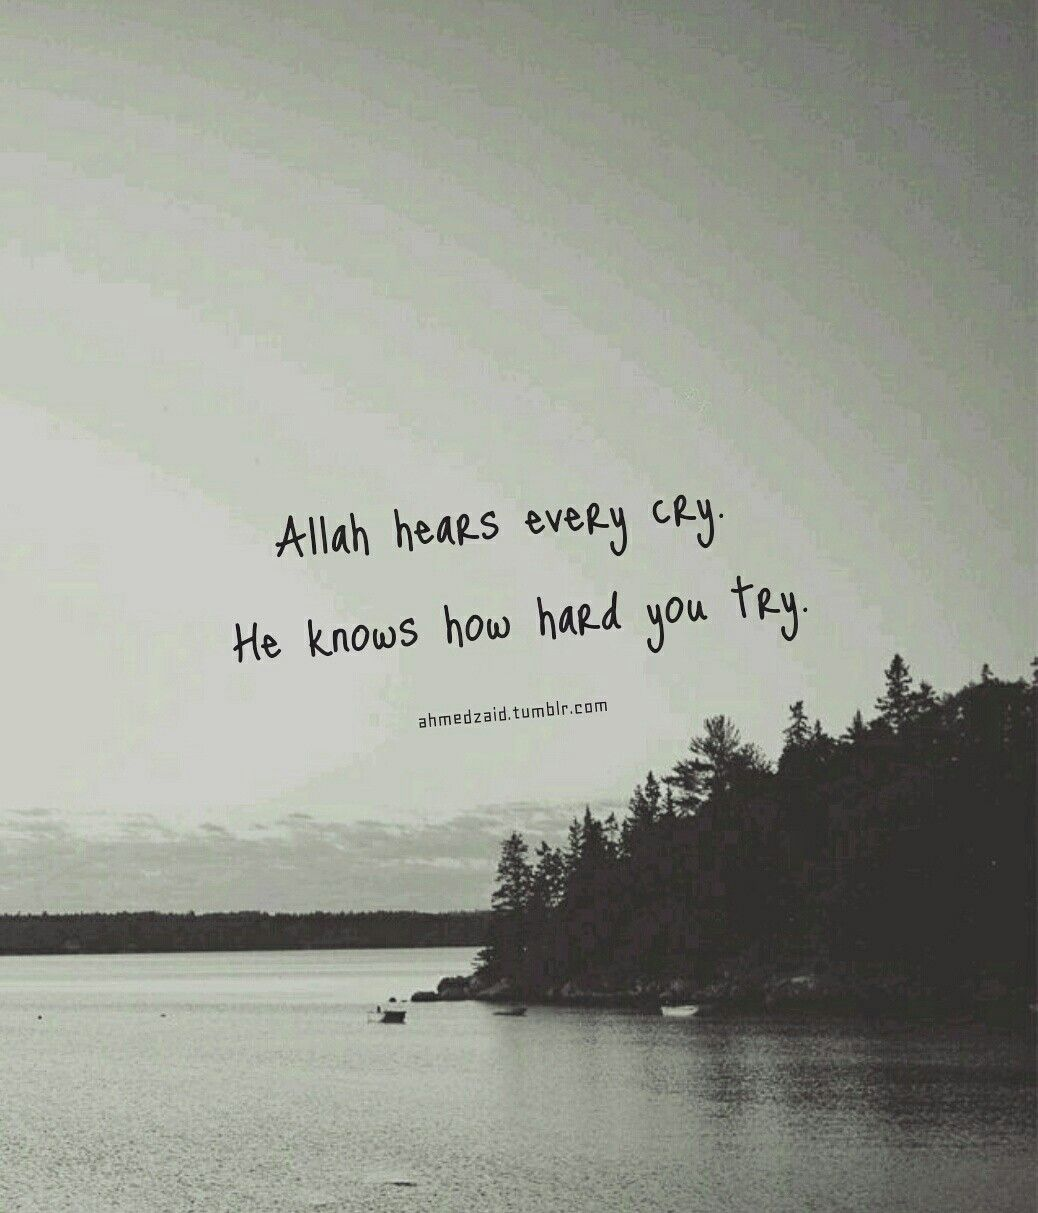 Indeed Allah Knows You And Sees You And Cares About You More Than